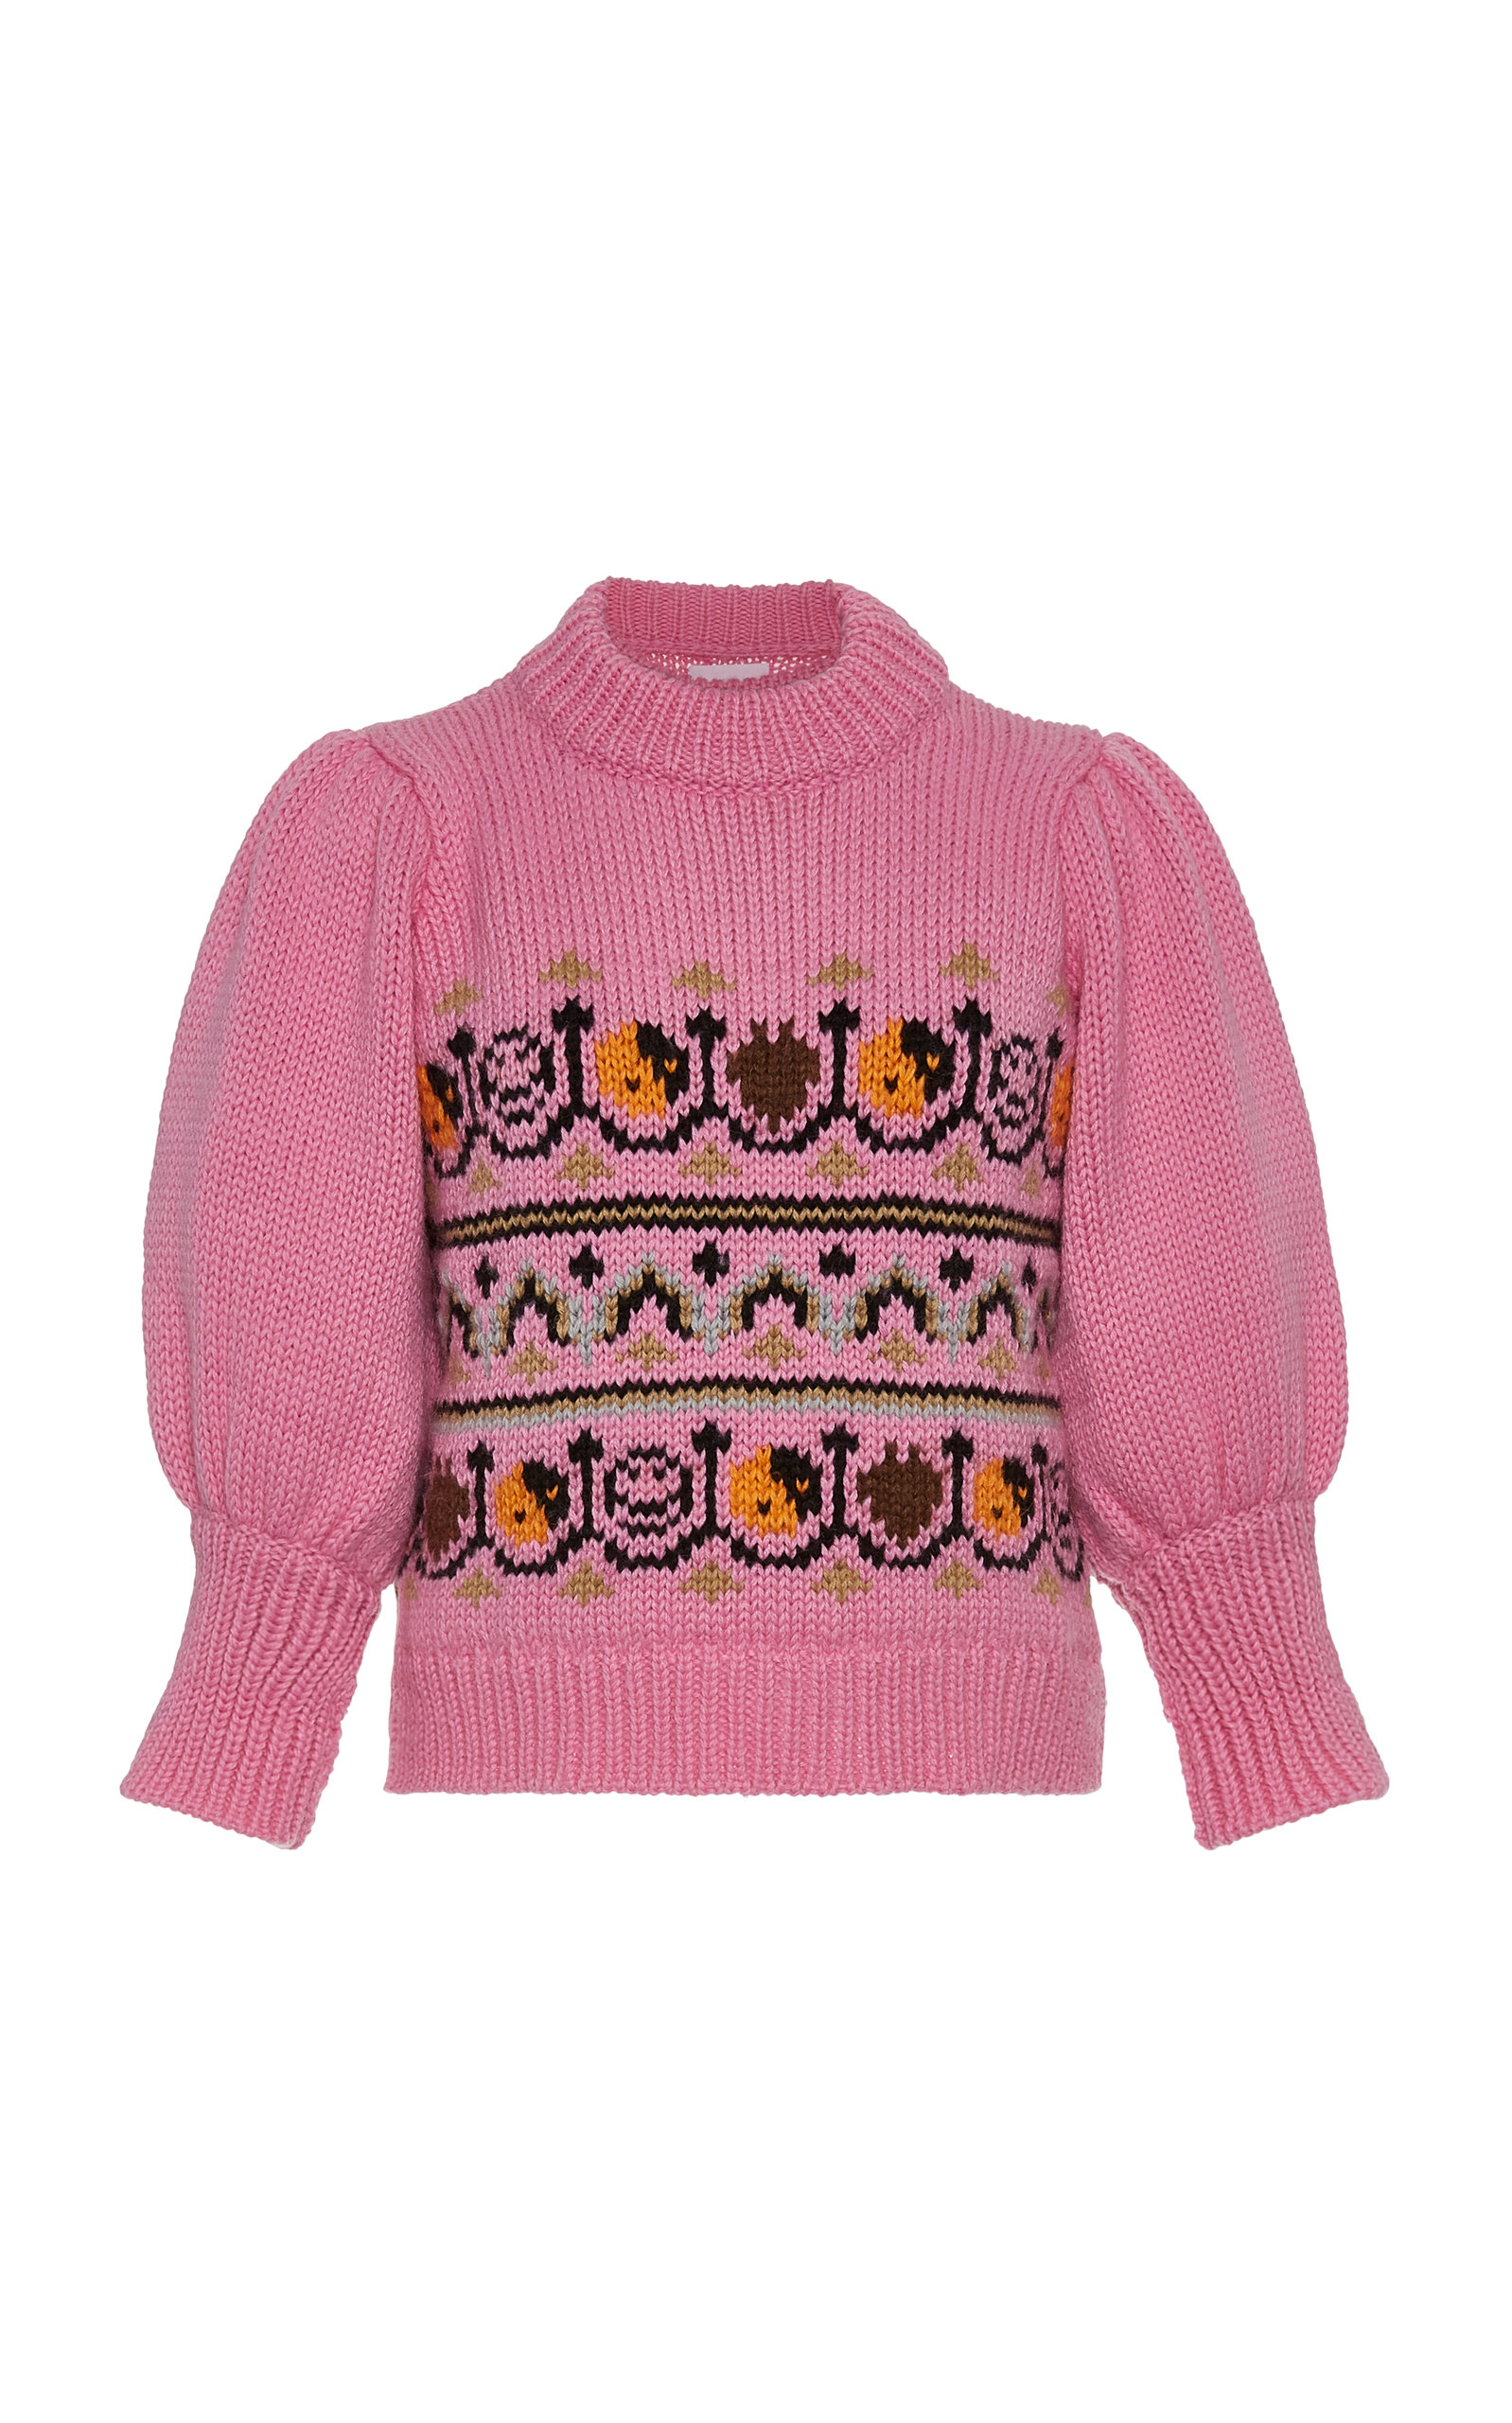 Ganni Knits Hand Knit Puff-Sleeve Wool Sweater